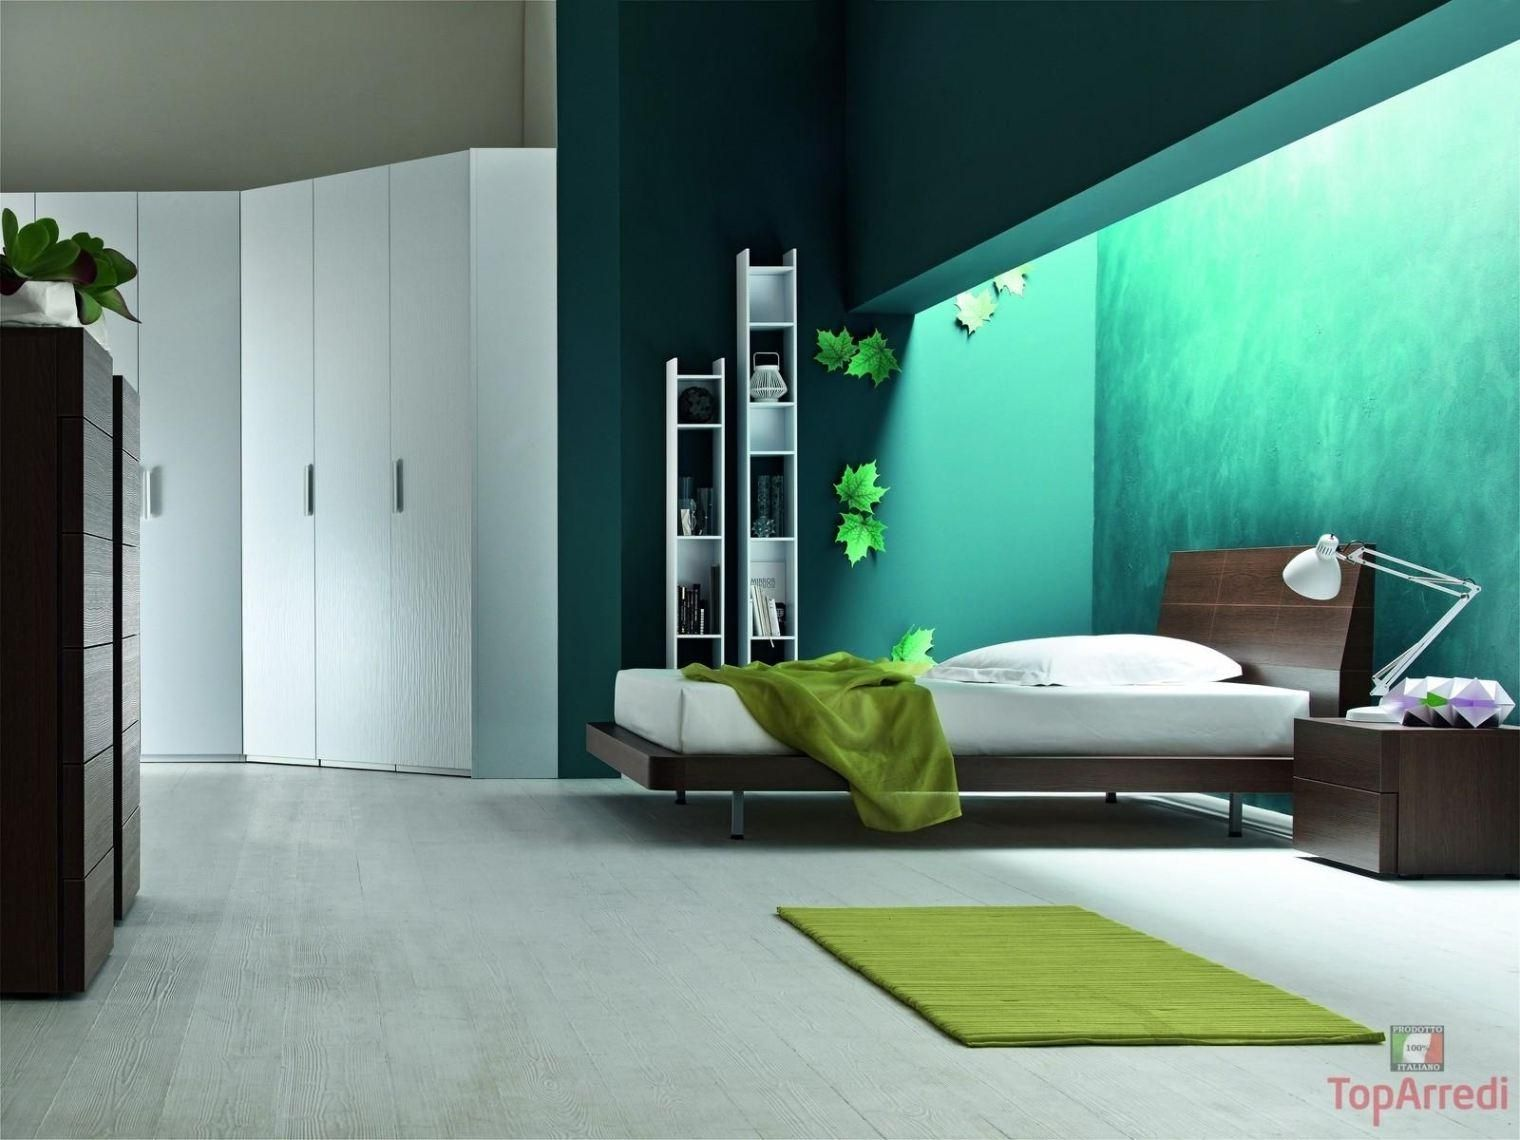 Bedroom Painting Designs Gorgeous Greenbedroomwallspaintprofessionalbedroomdesignideasfor Decorating Inspiration